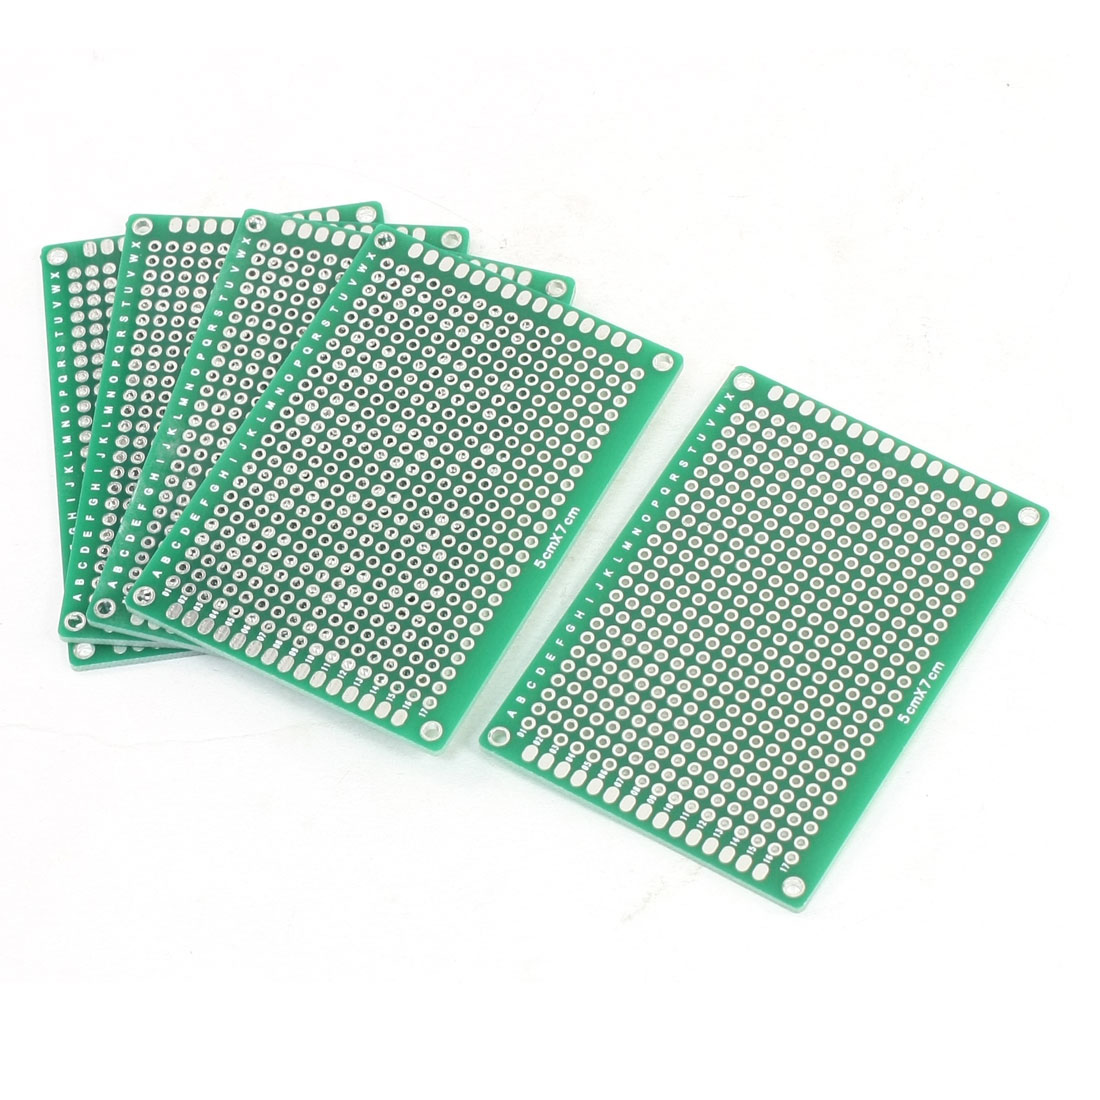 5 Pcs Prototyping Dual Side Green Copper PCB Board Stripboard 5x7cm